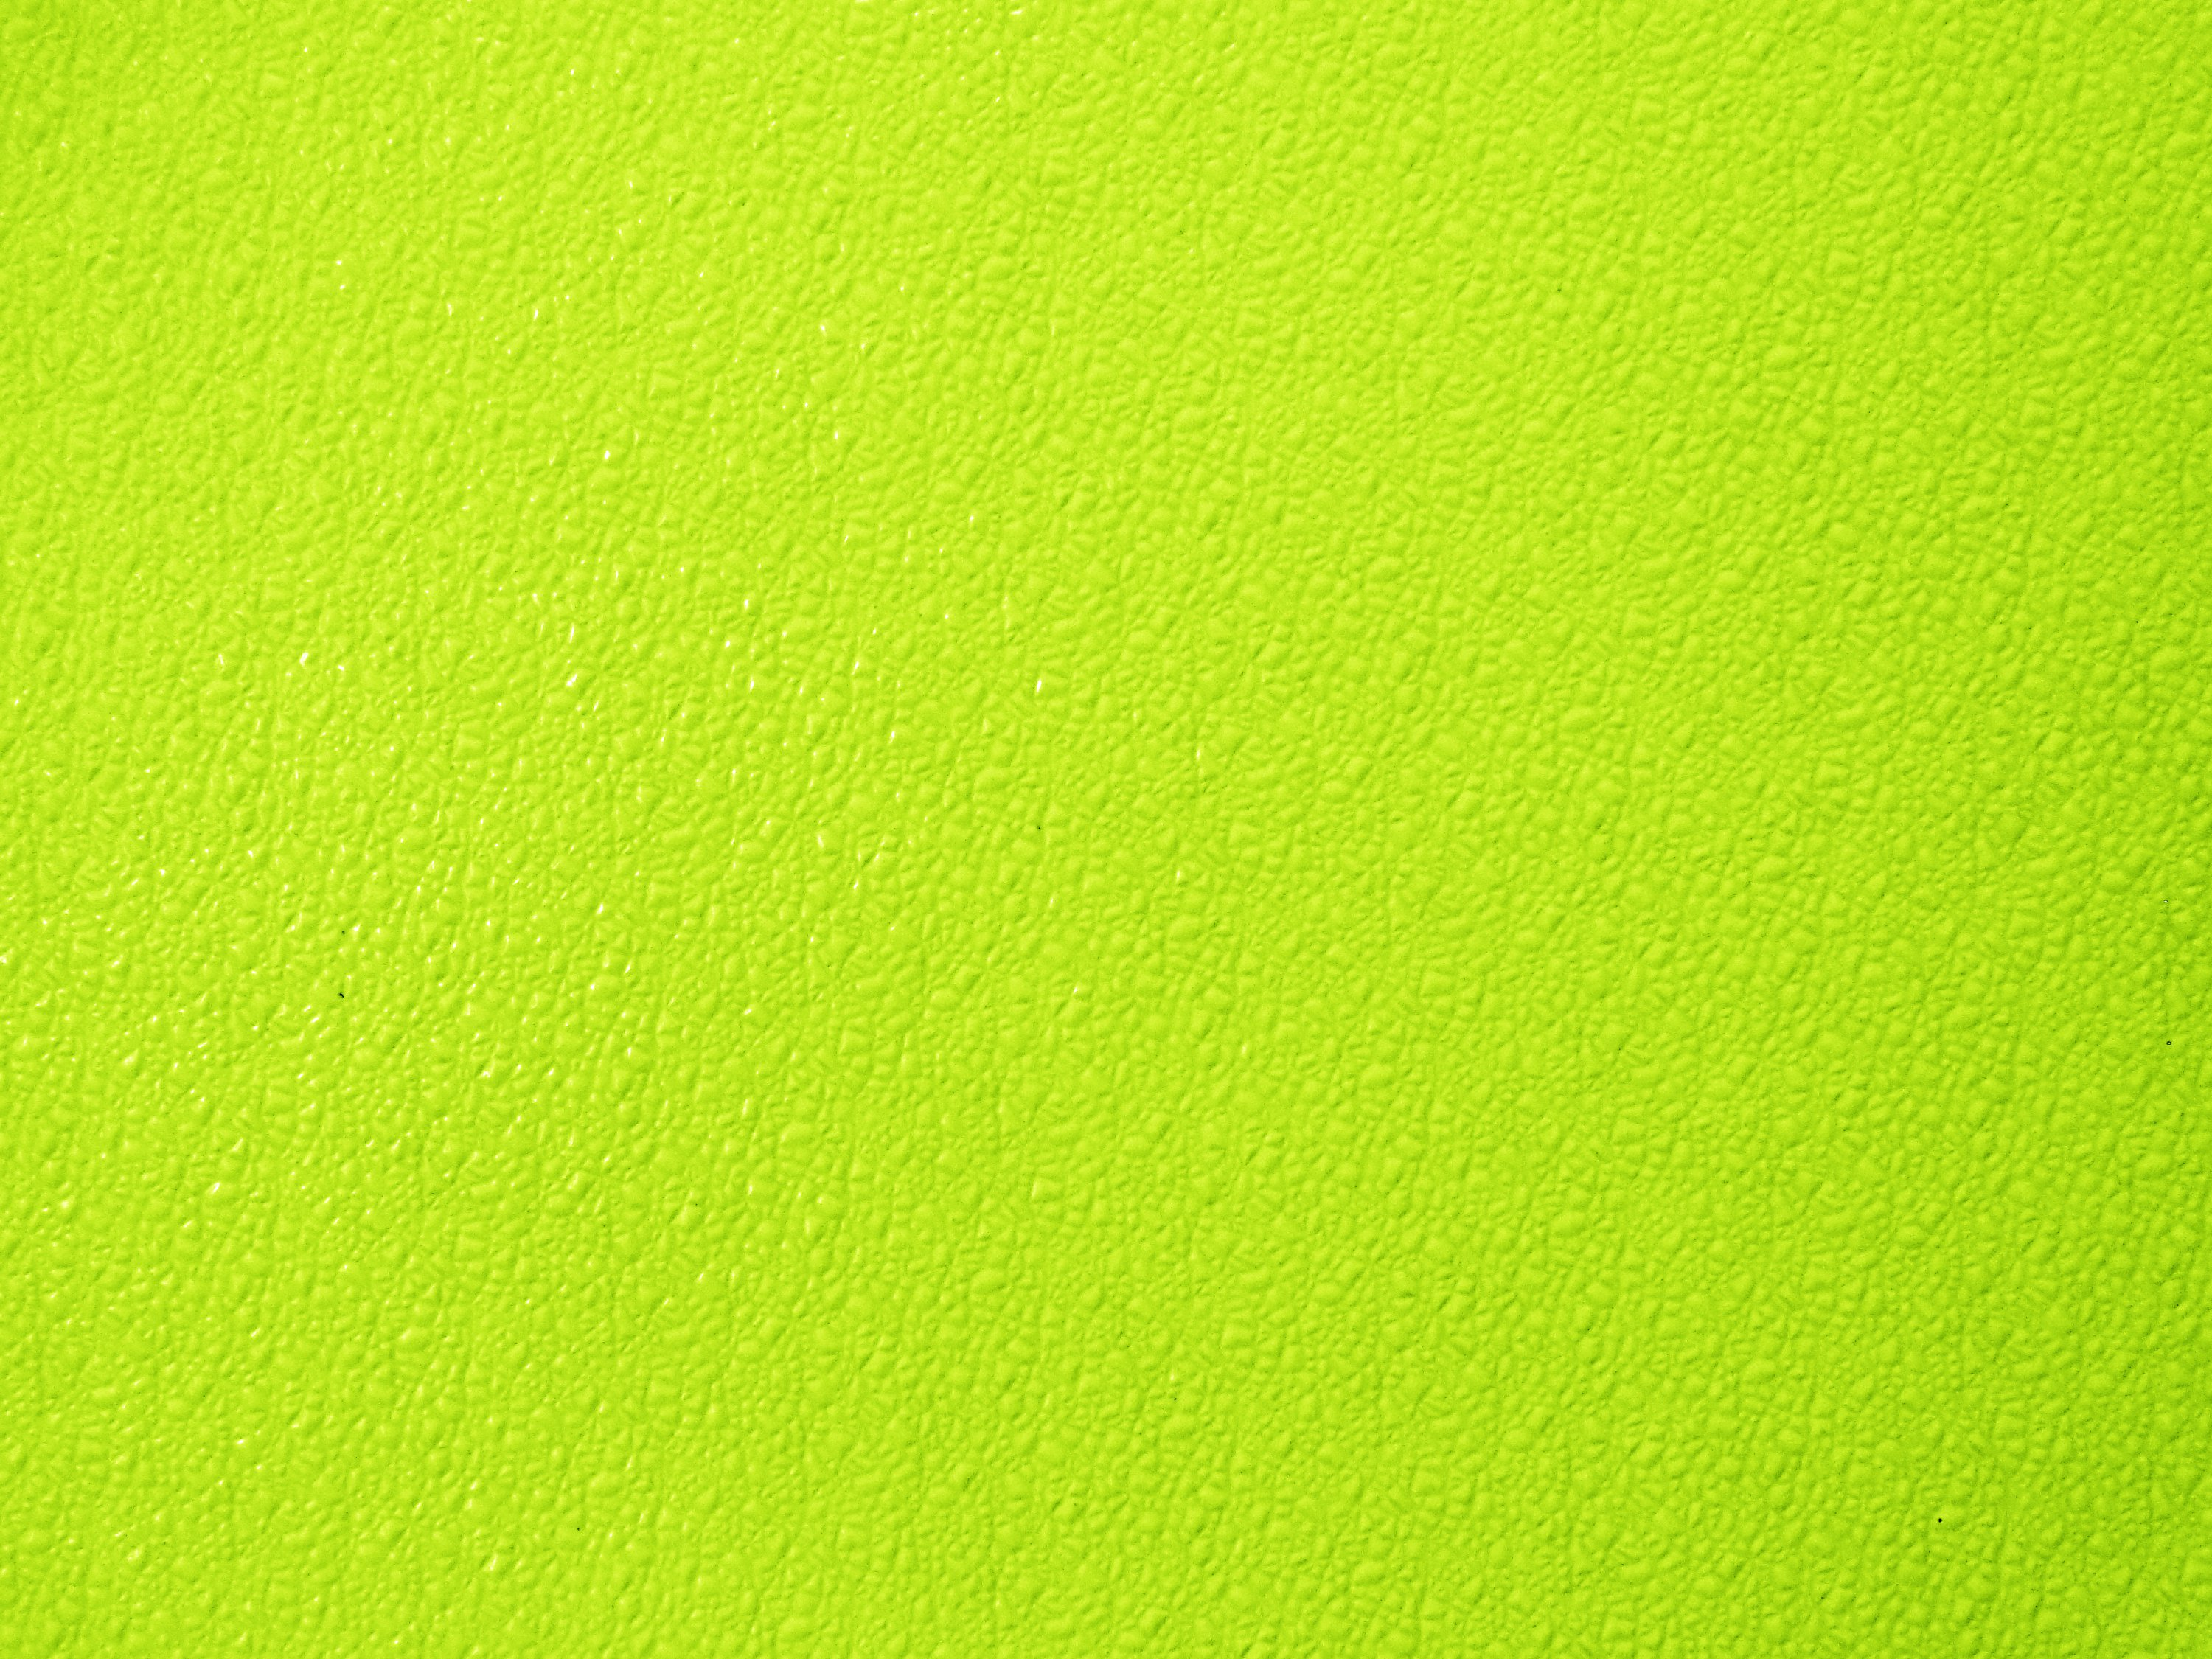 Bumpy Chartreuse Plastic Texture Picture | Free Photograph ...